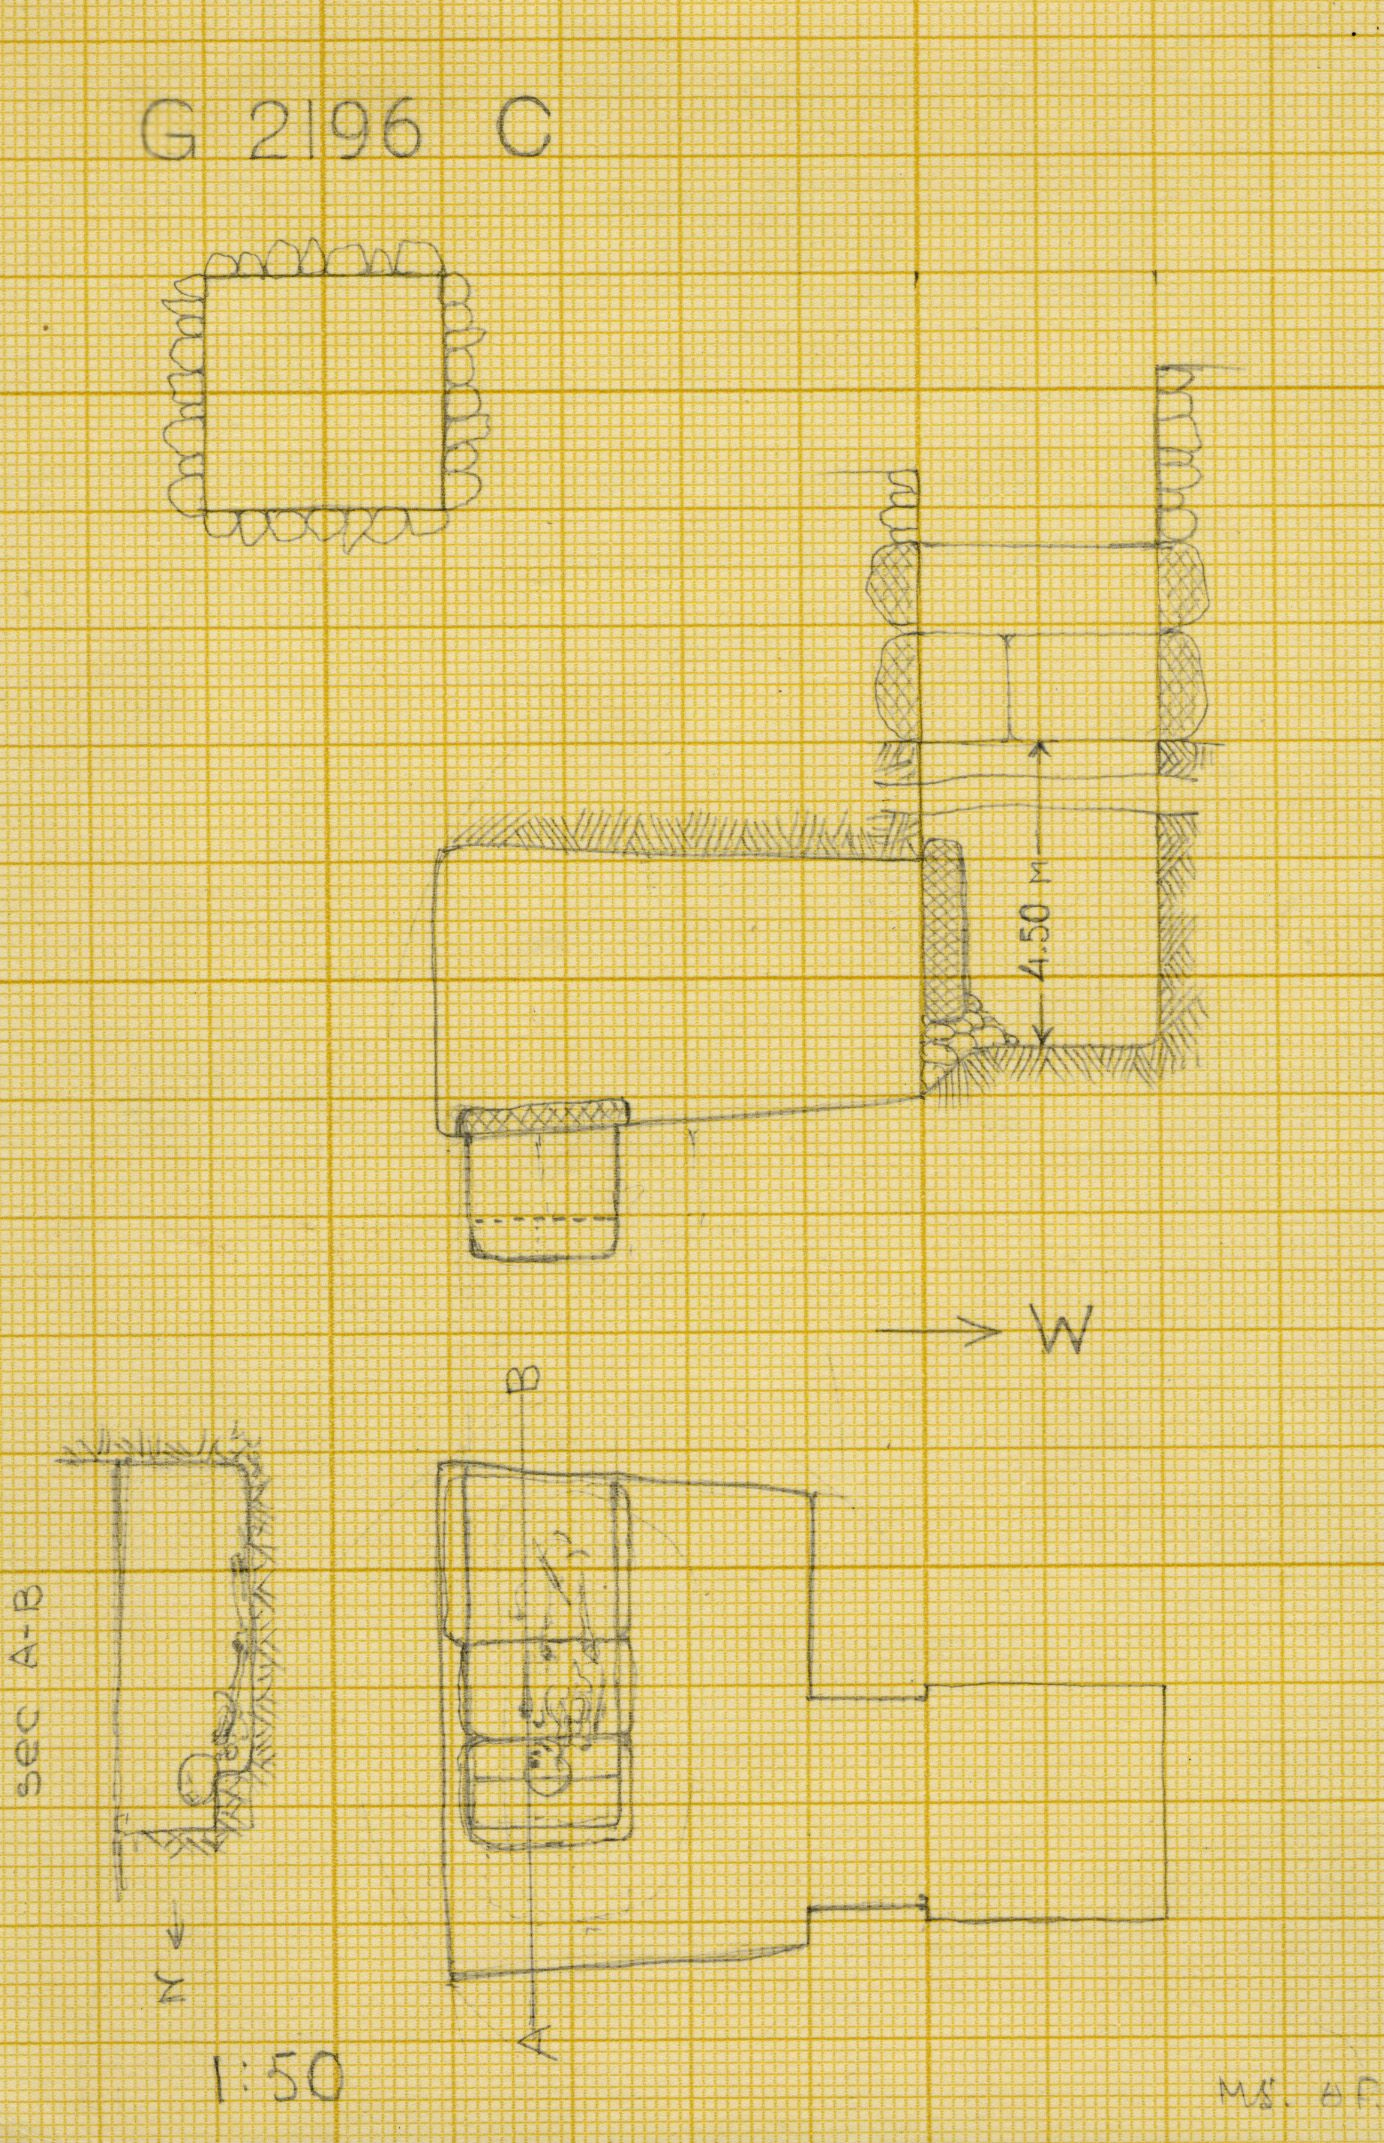 Maps and plans: G 2196, Shaft C